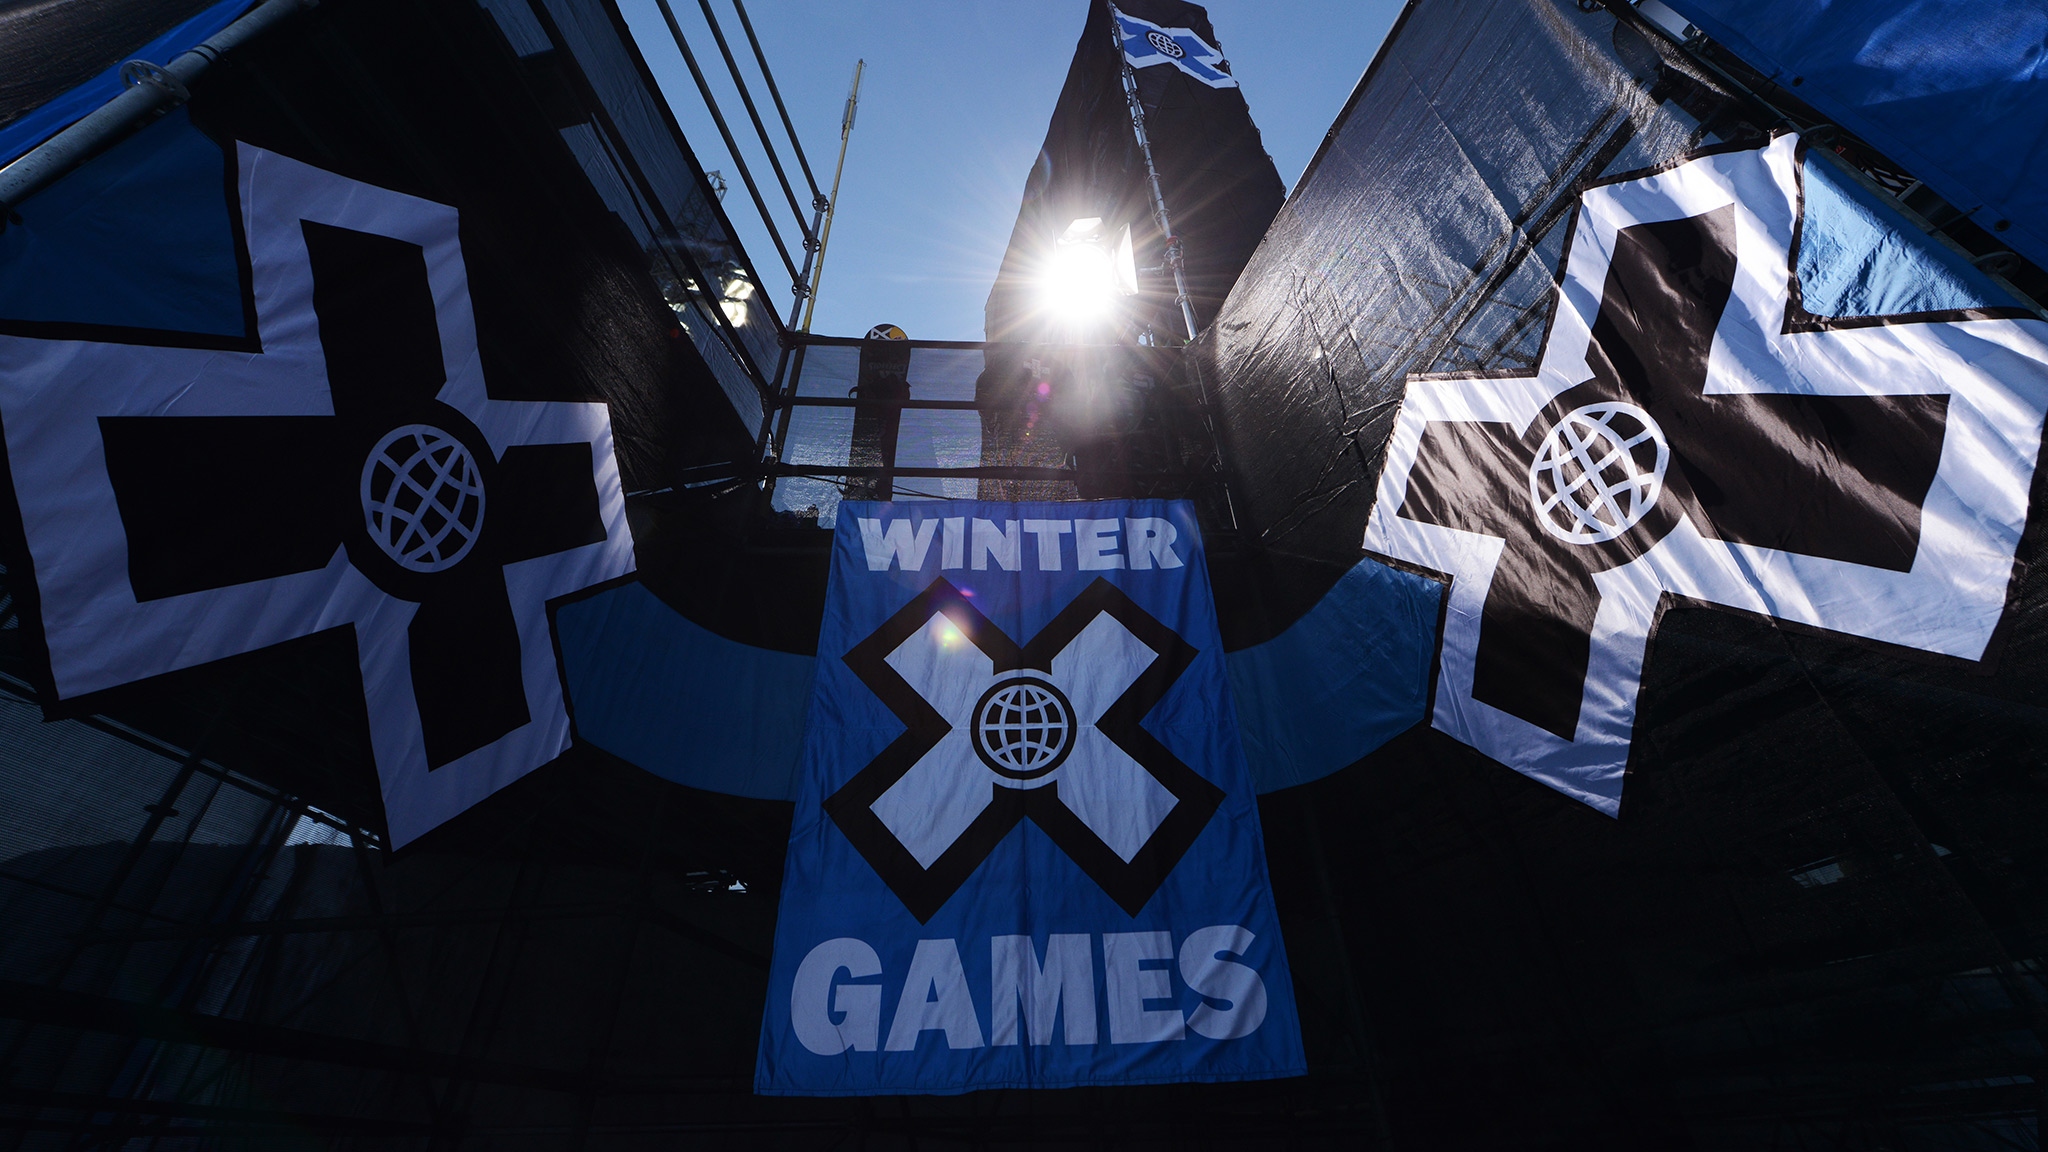 Submit your questions for Kelly Clark, Chloe Kim, Mitchie Brusco, Gretchen Bleiler, Mike Douglas, and Men's Ski Big Air gold medalist on X Games Extra.